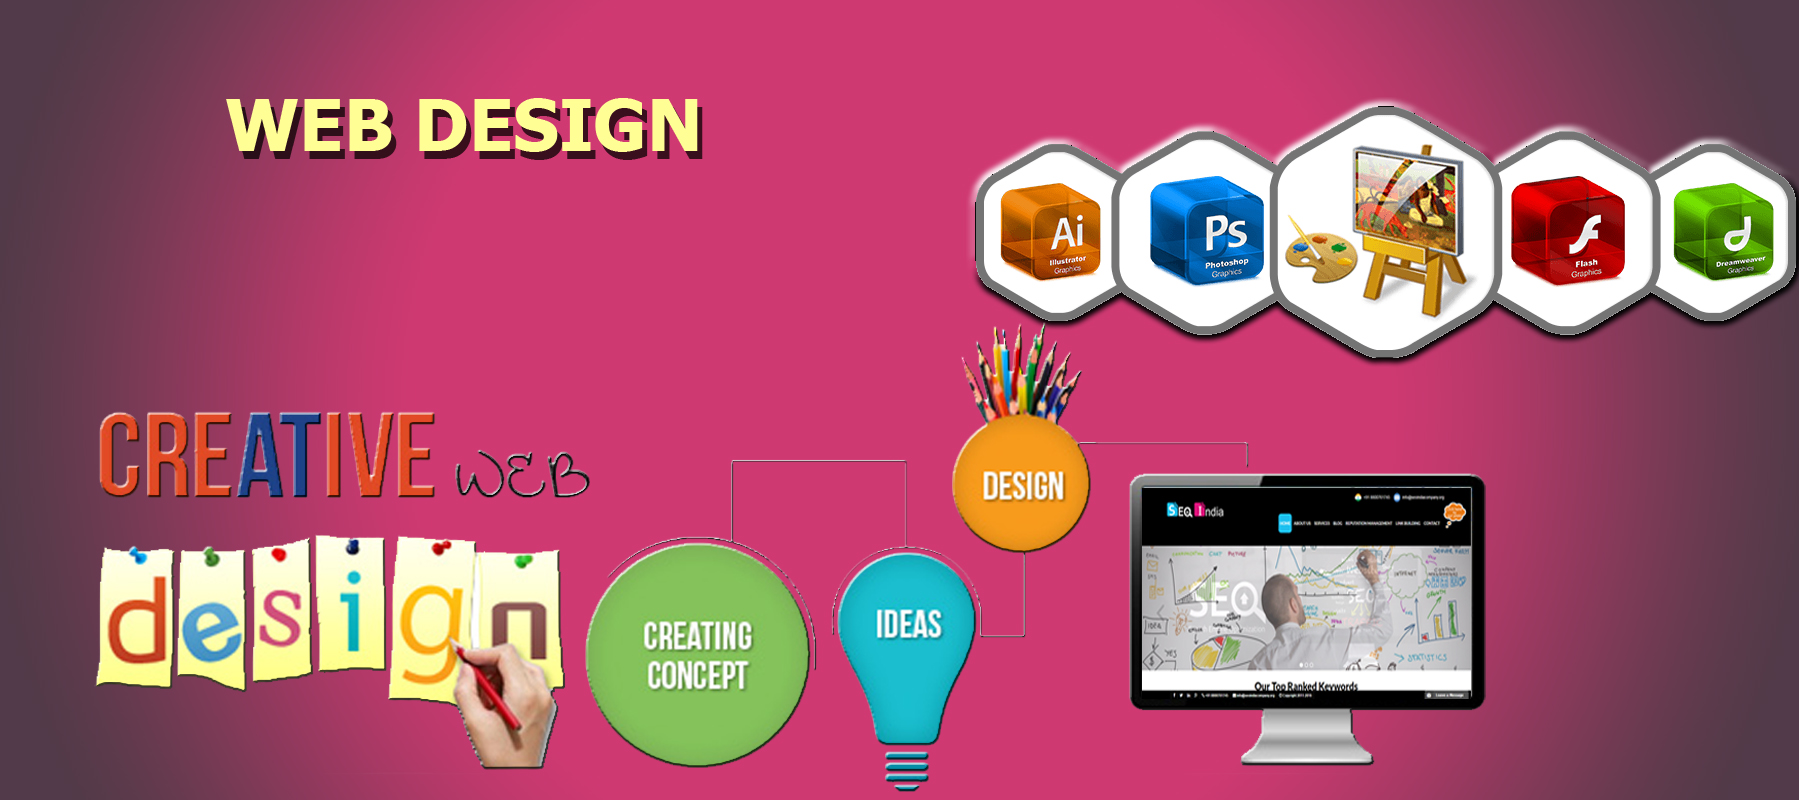 We, SEO India Headquartered In Delhi, Is A Web Design Company India And We  Create Smart And Appealing Web Designs For Clients Across India And Around  The ...